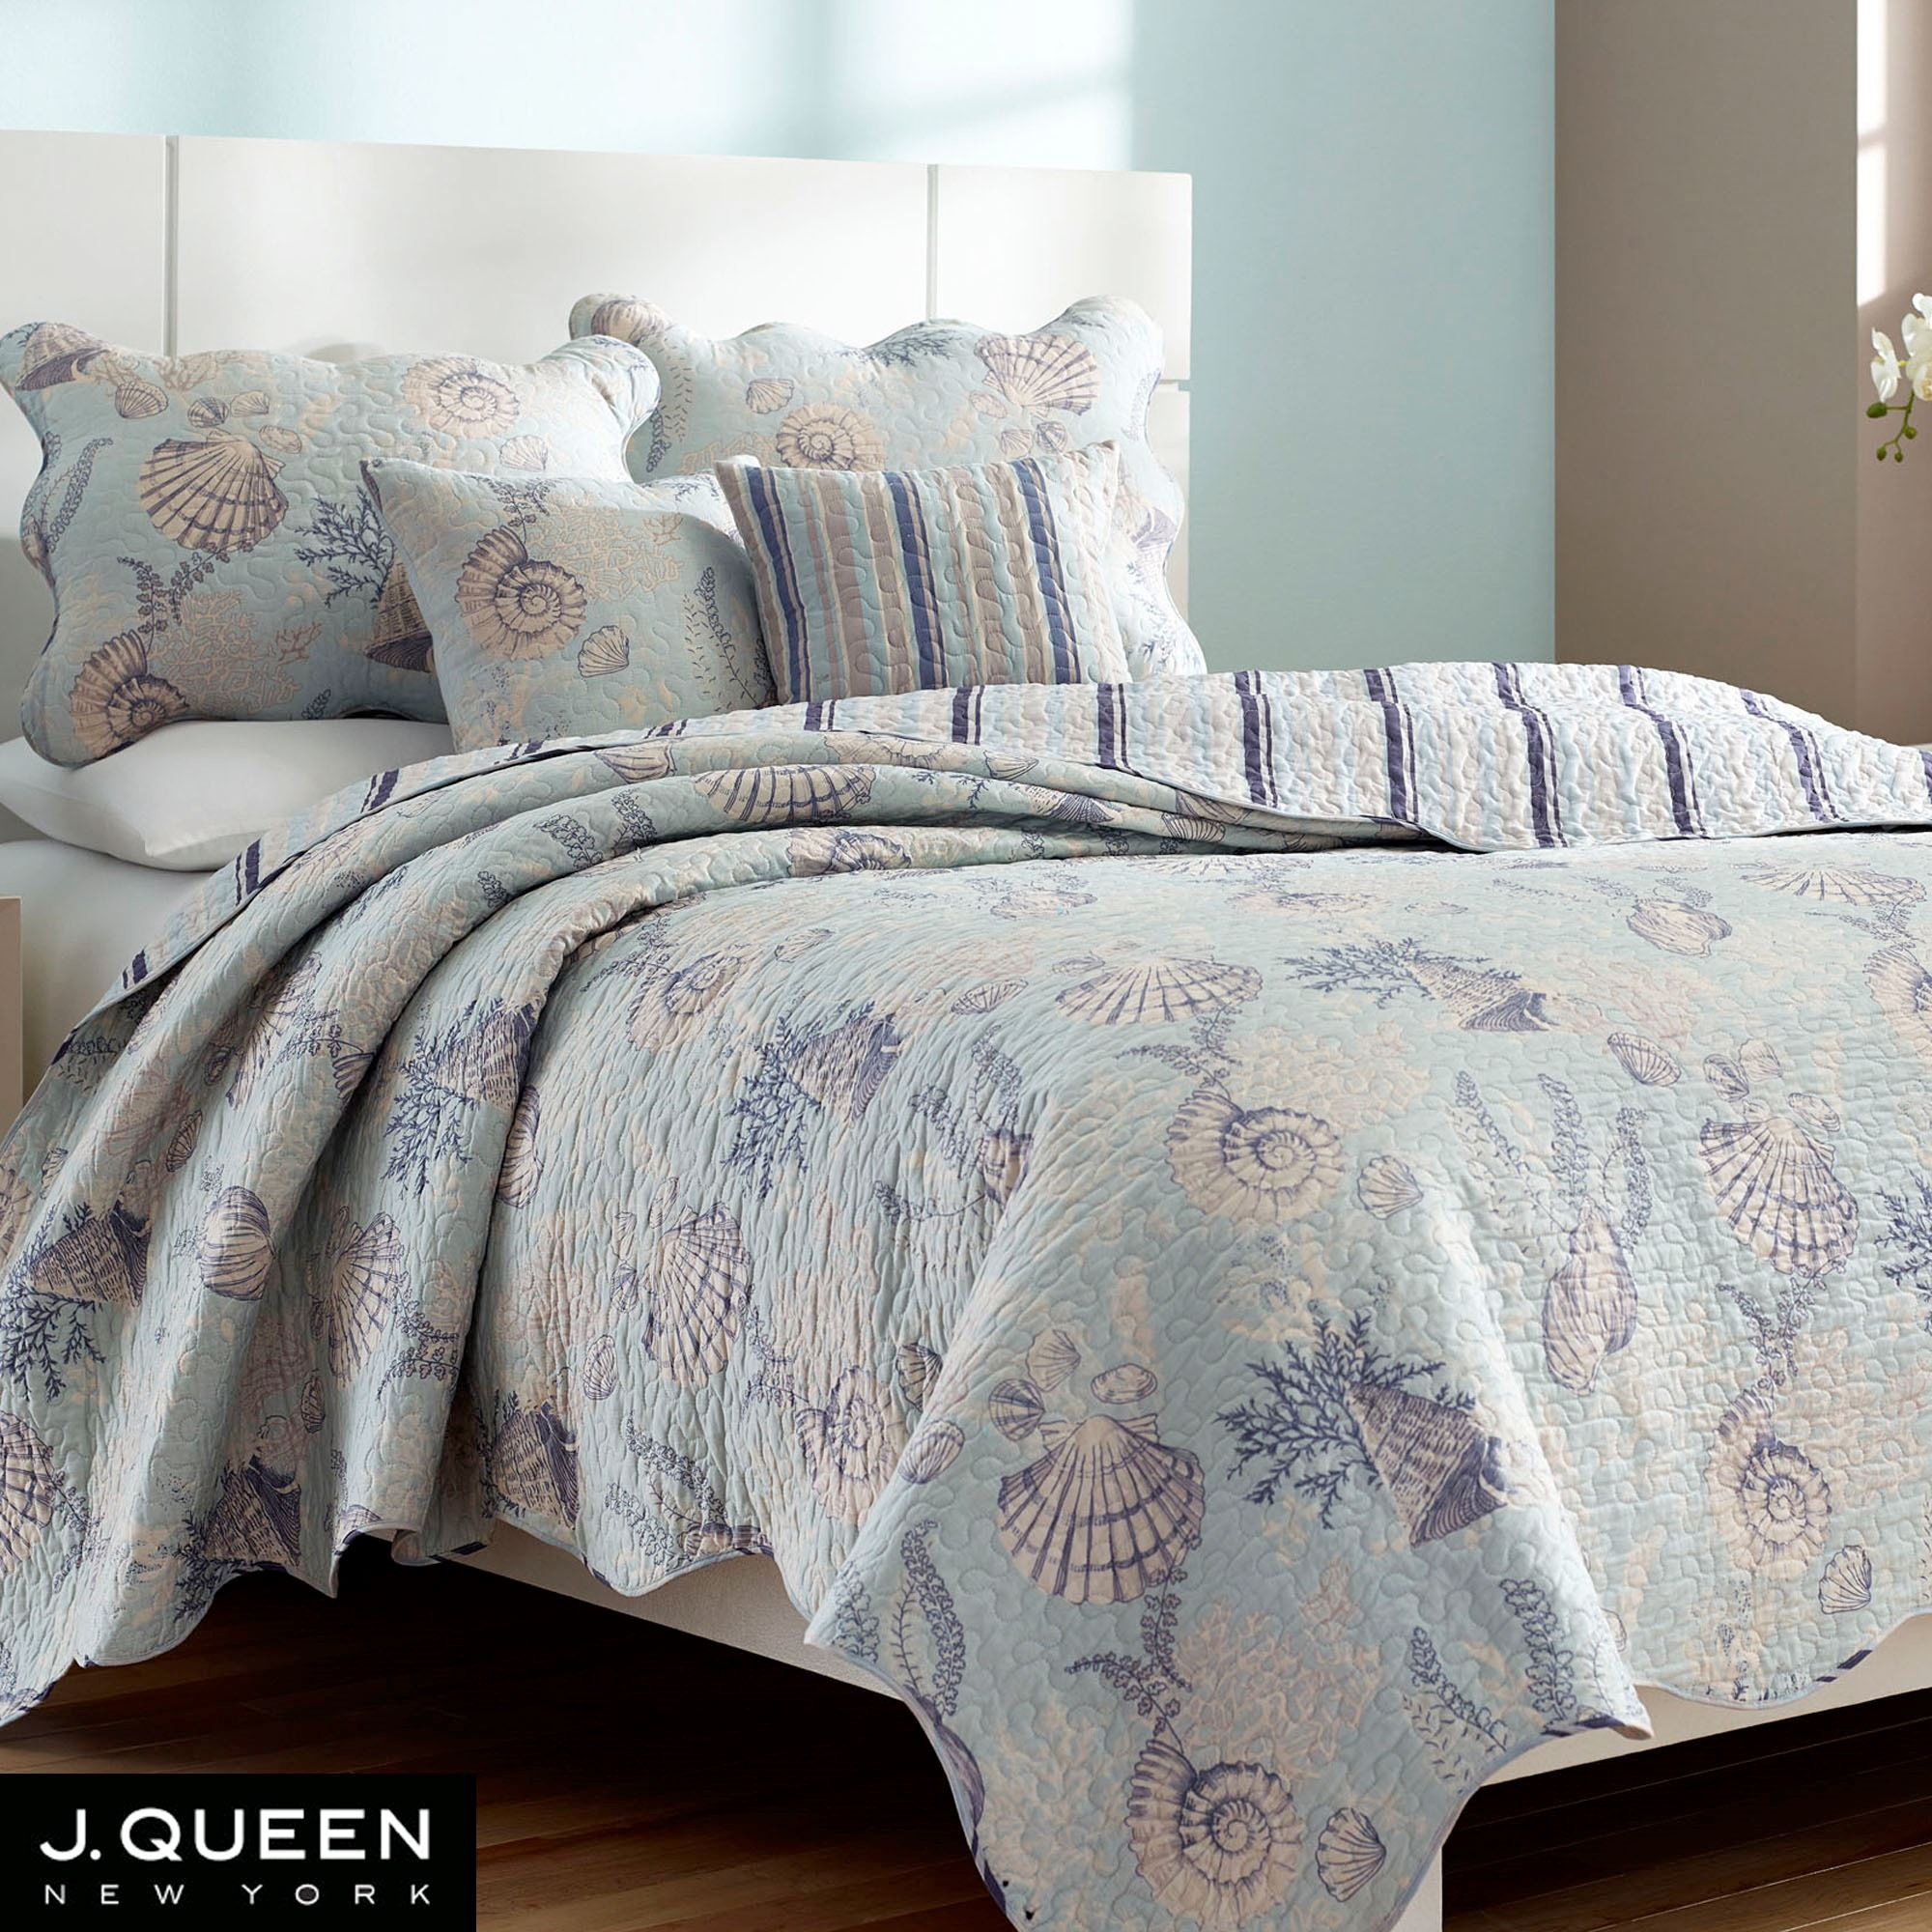 Pacifica Pale Blue Coastal King Coverlet Set By J Queen New York